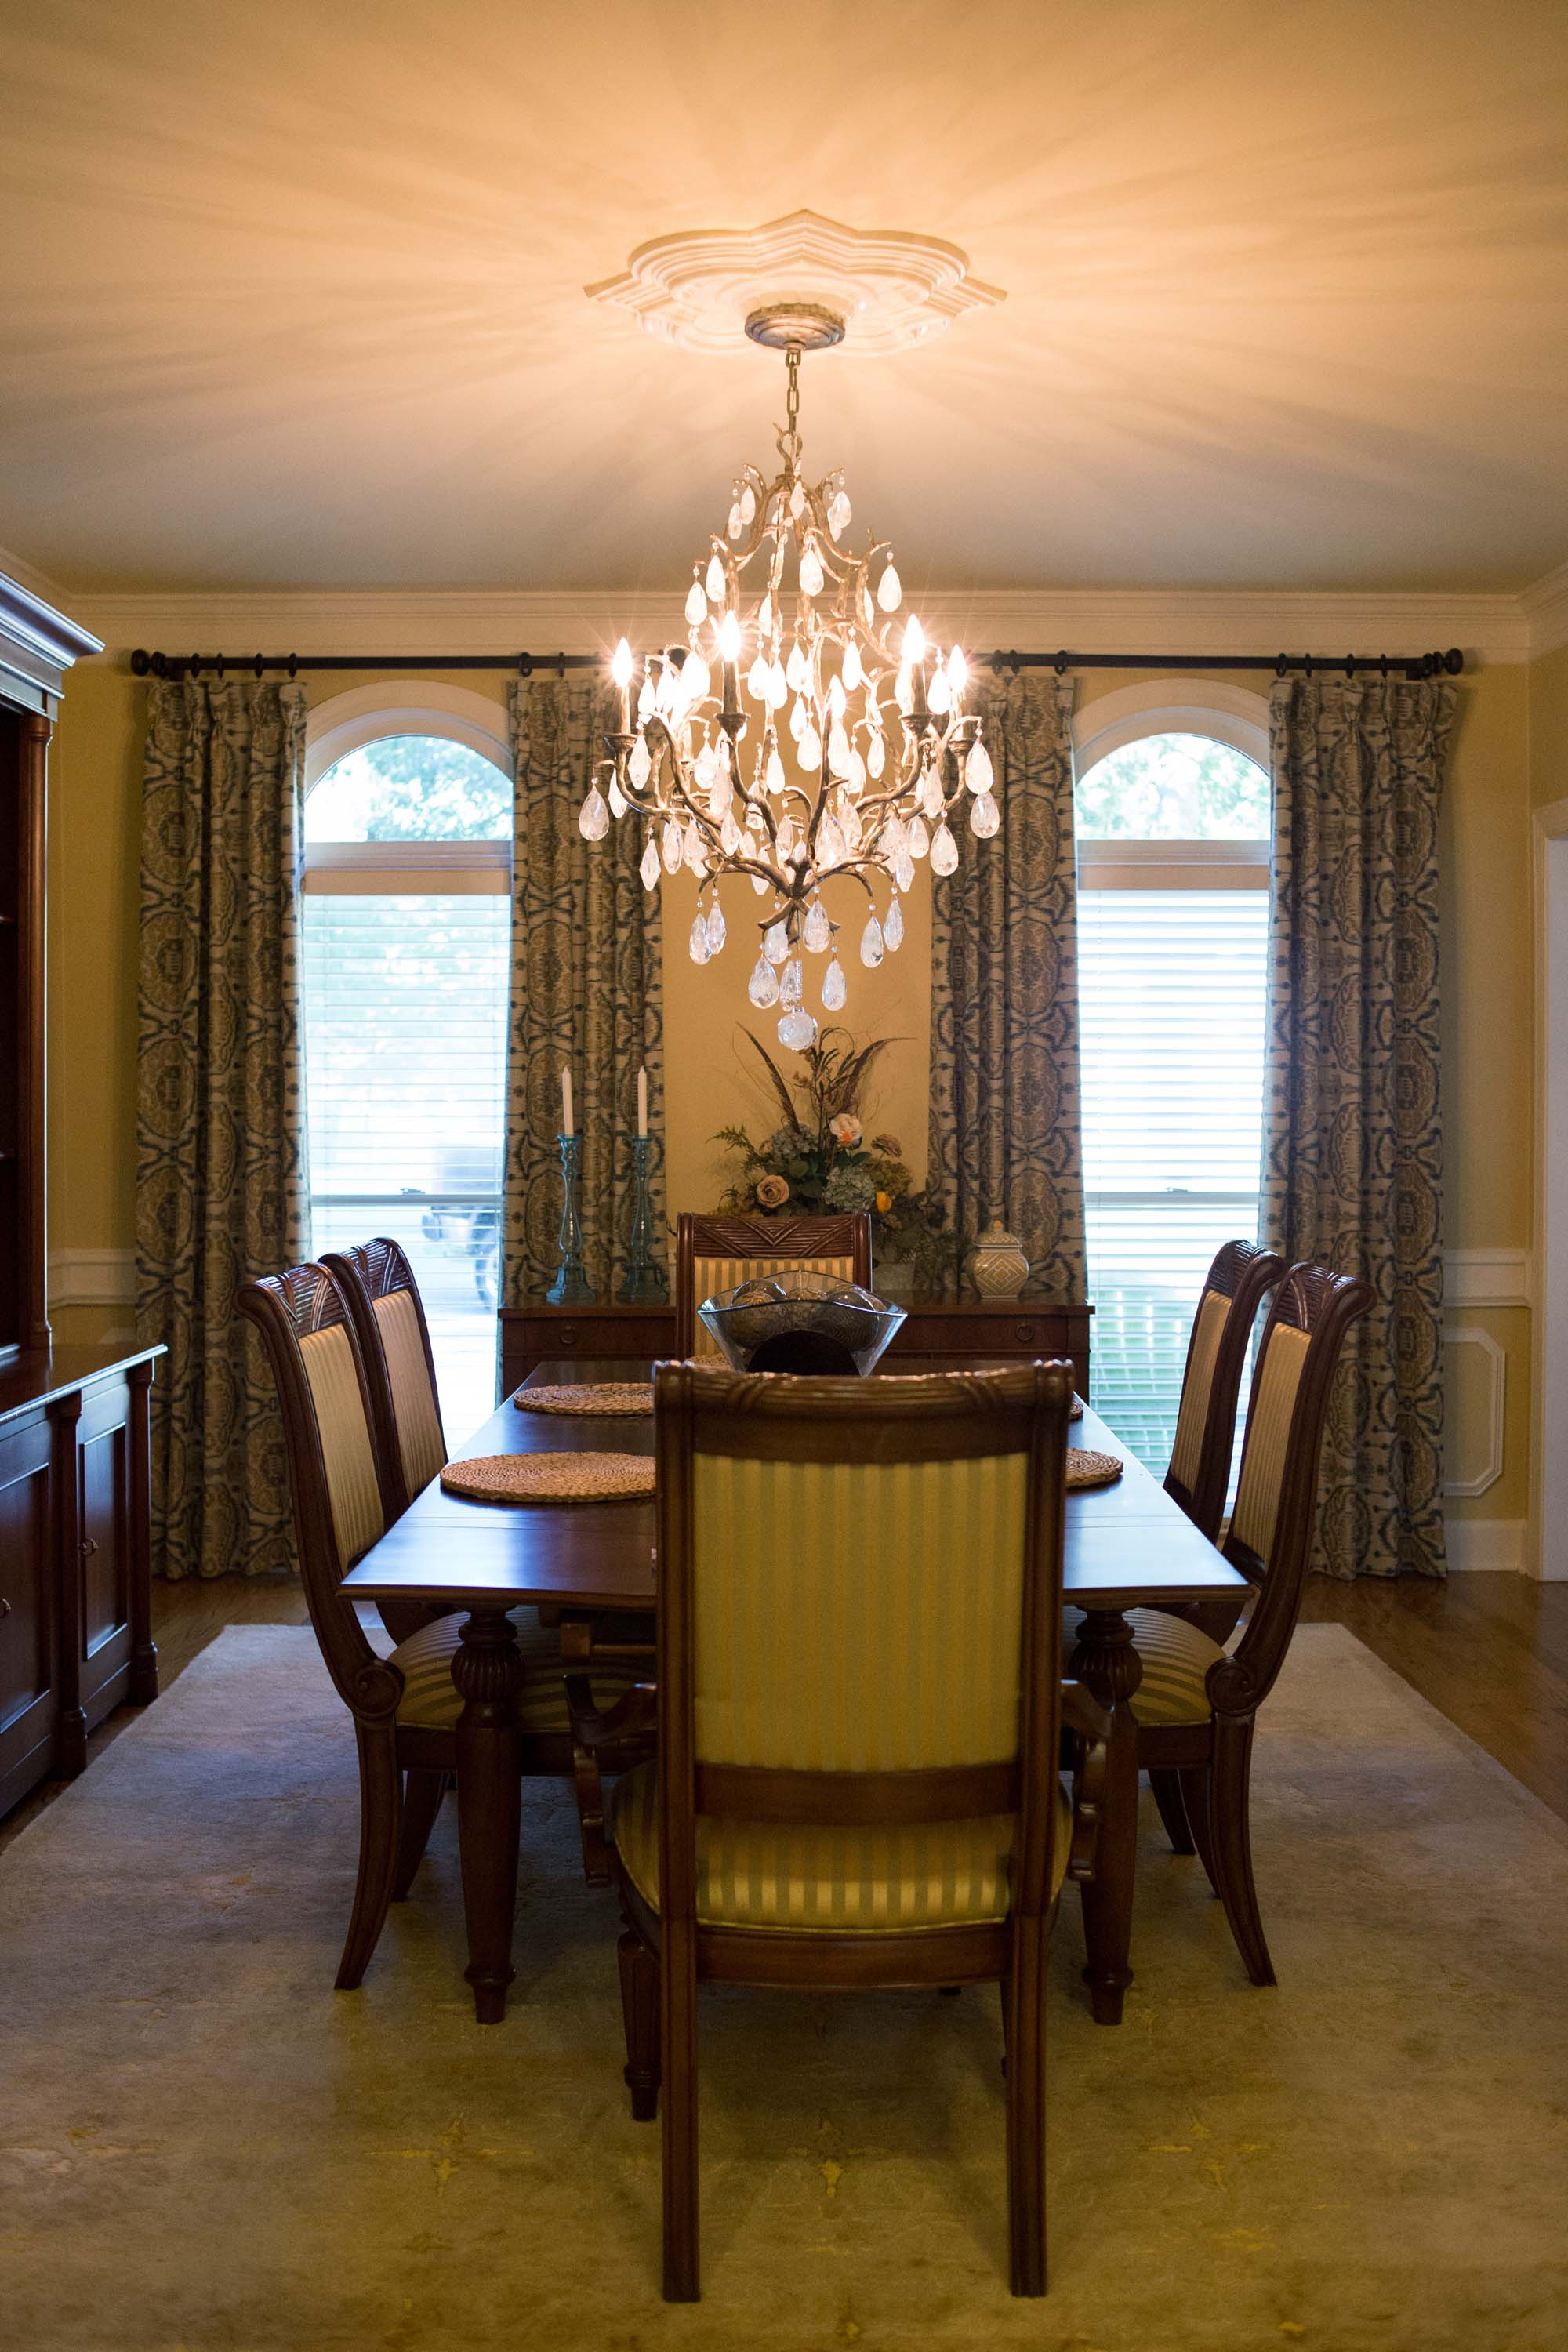 Dining room with wooden table, chairs and chandelier